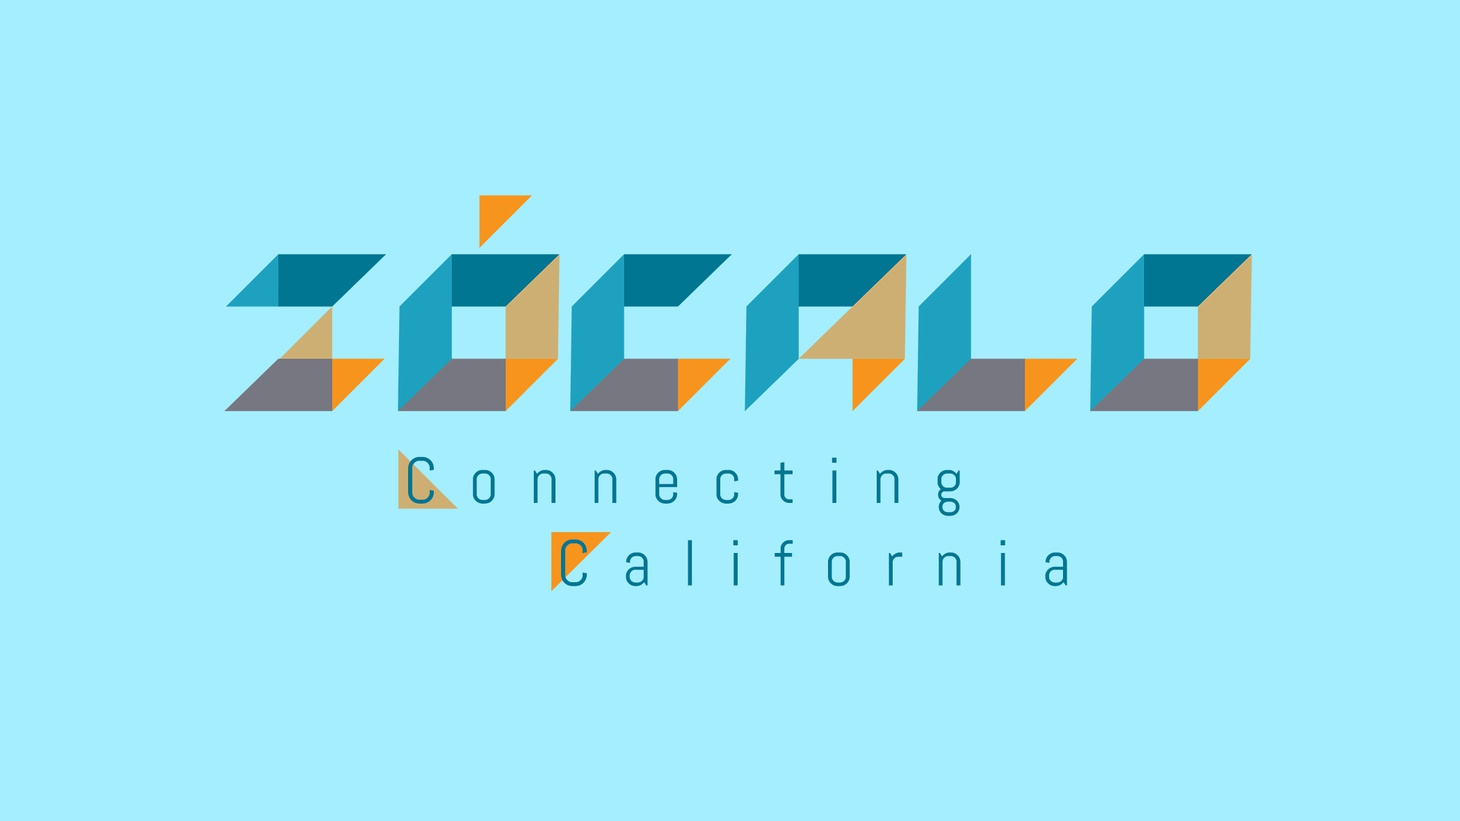 High-speed internet access is something many of us take for granted in the 21st century. But in Southern California and across the country, the lack of universal quality service is especially problematic during the Coronavirus pandemic.